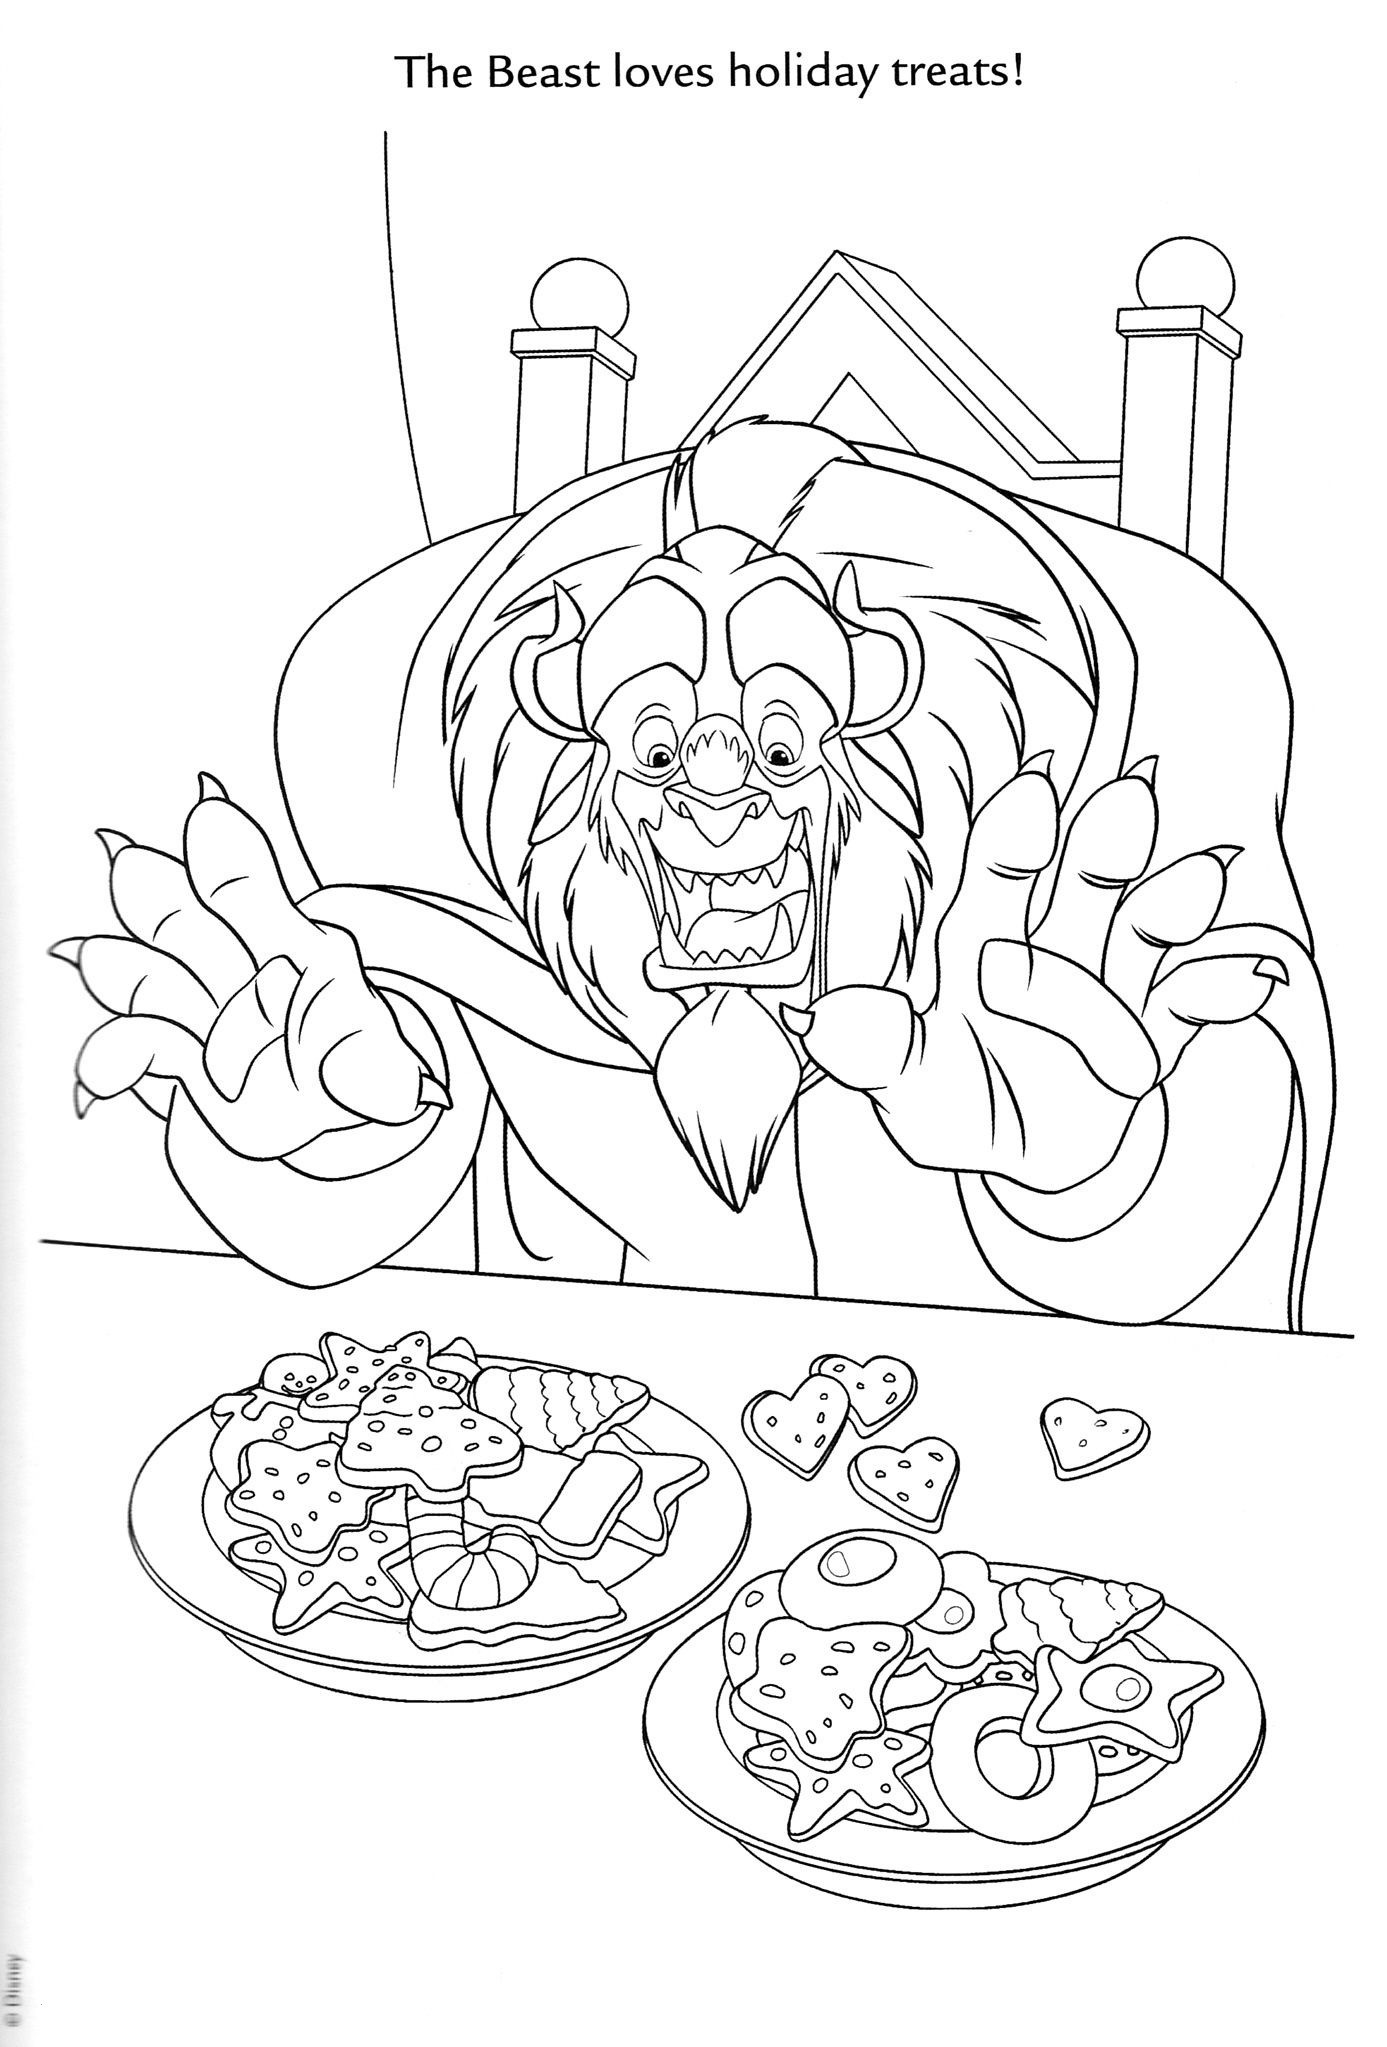 Micky Maus Bilder Zum Ausmalen Genial Baby Mickey Mouse Coloring Pages 34 Best Minnie Mouse Printable Galerie